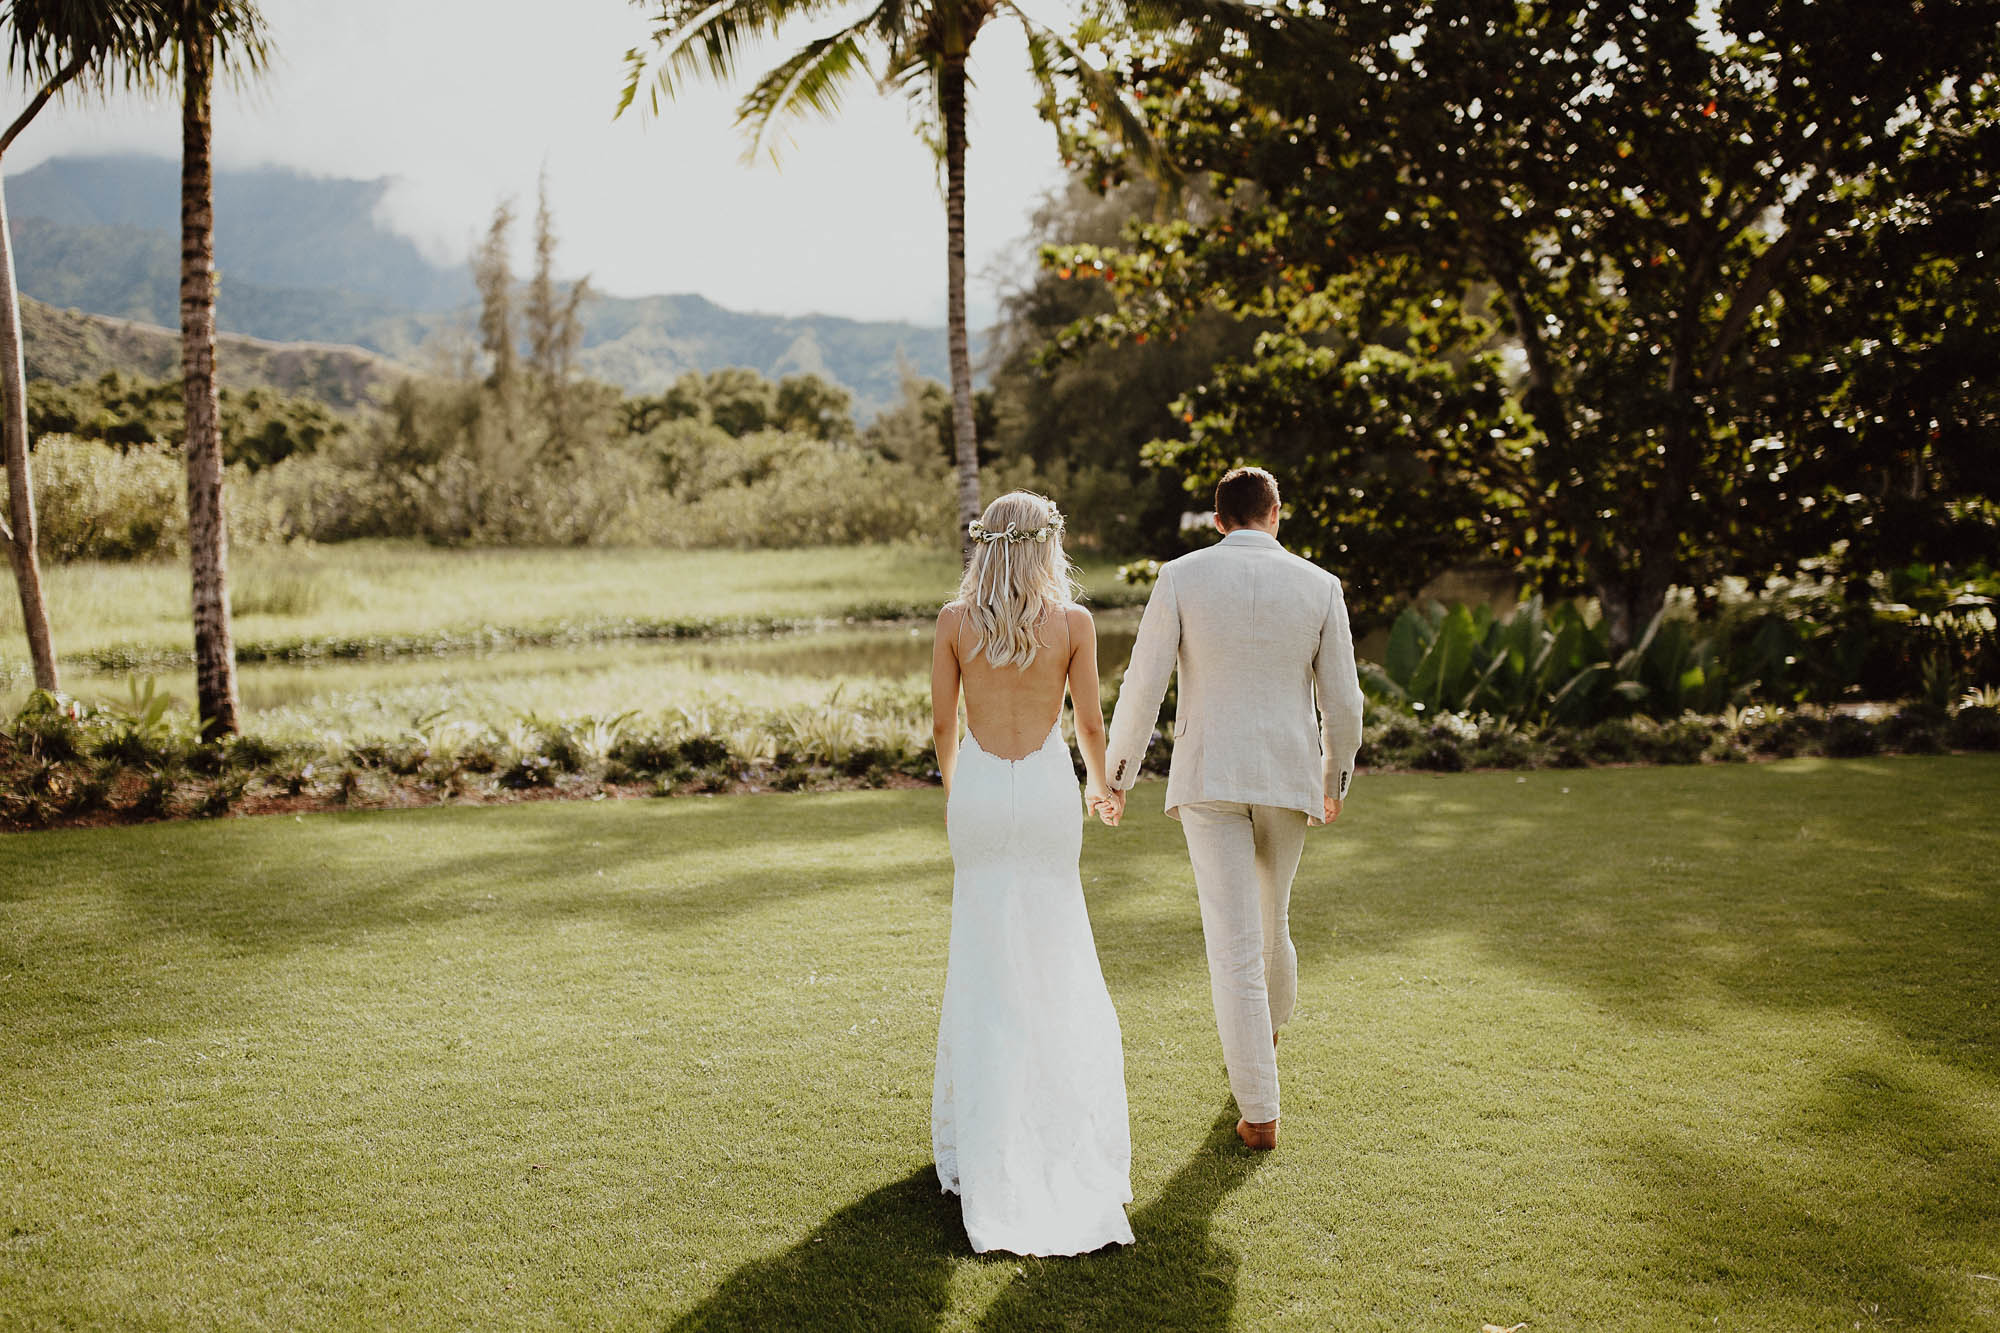 Couple photos backless wedding dress on hanalei north shore kauai hawaii